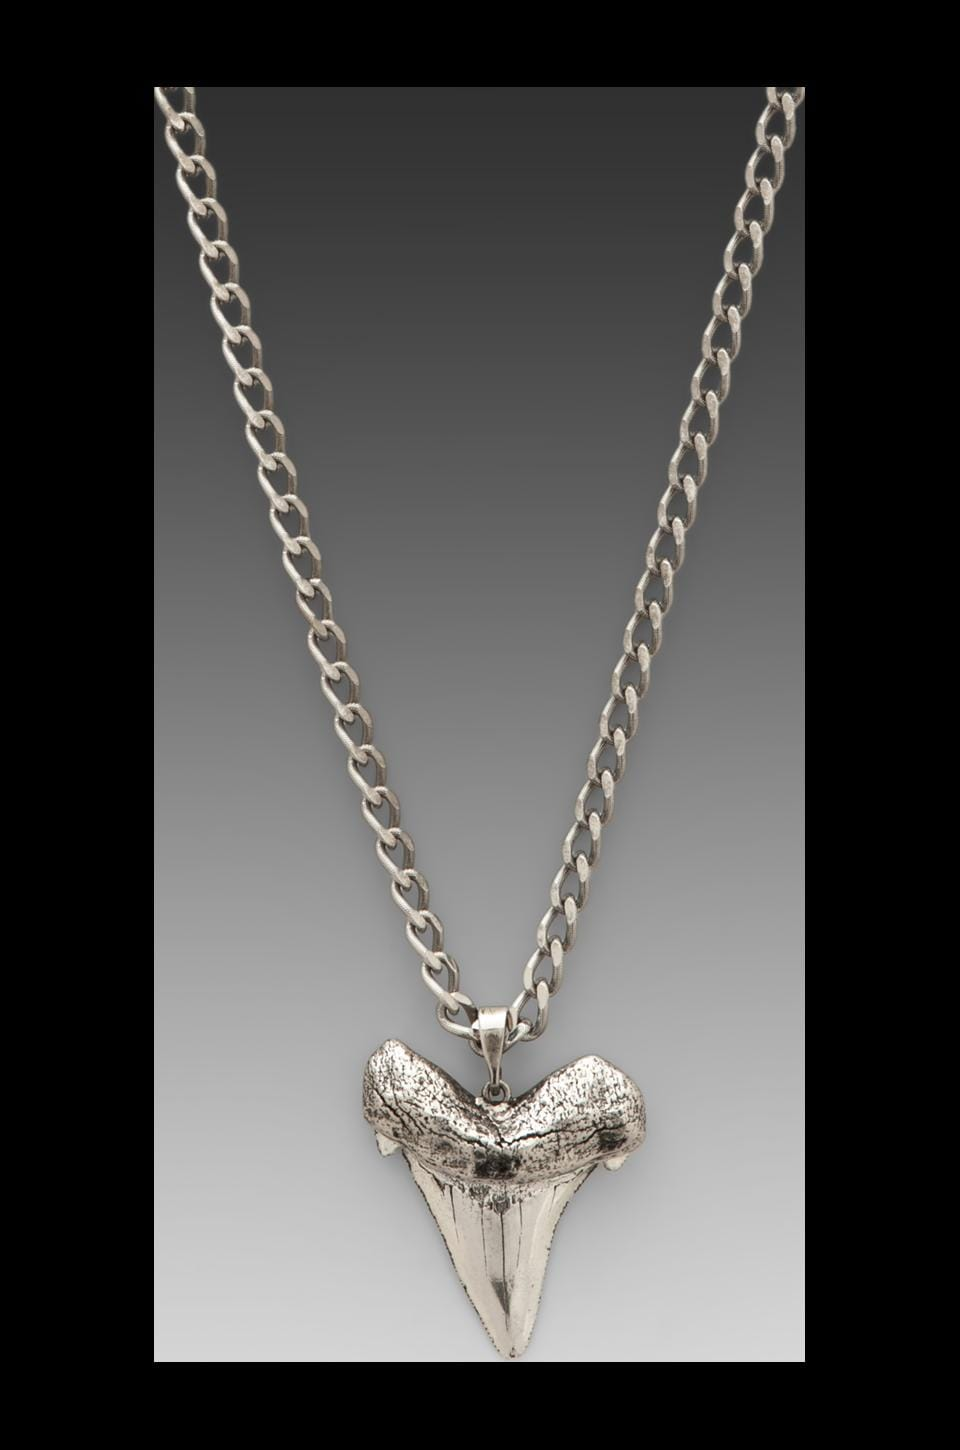 Luv AJ Oversized Shark Tooth Long Necklace in Antique Silver/Nickel